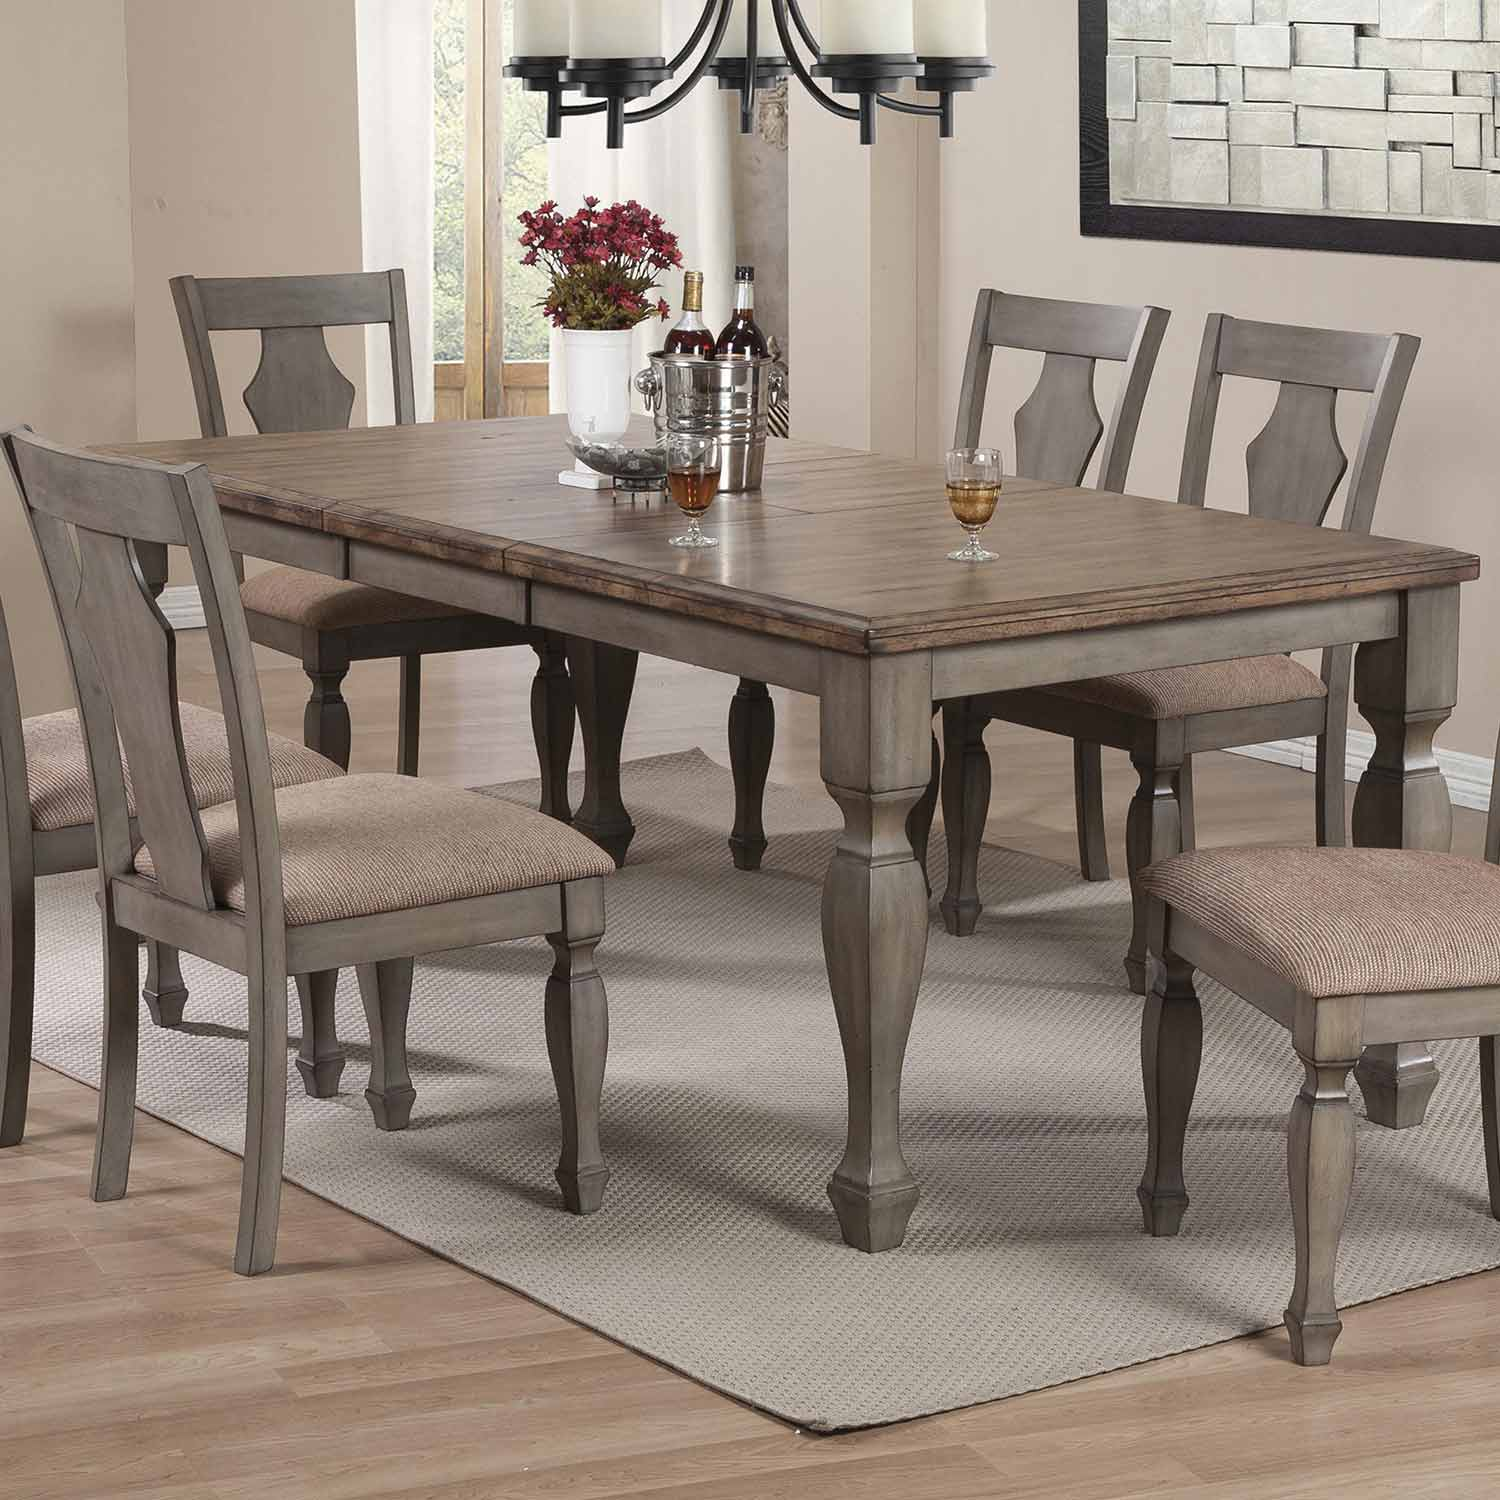 Coaster Riverbend Dining Table WheatAntique Grey